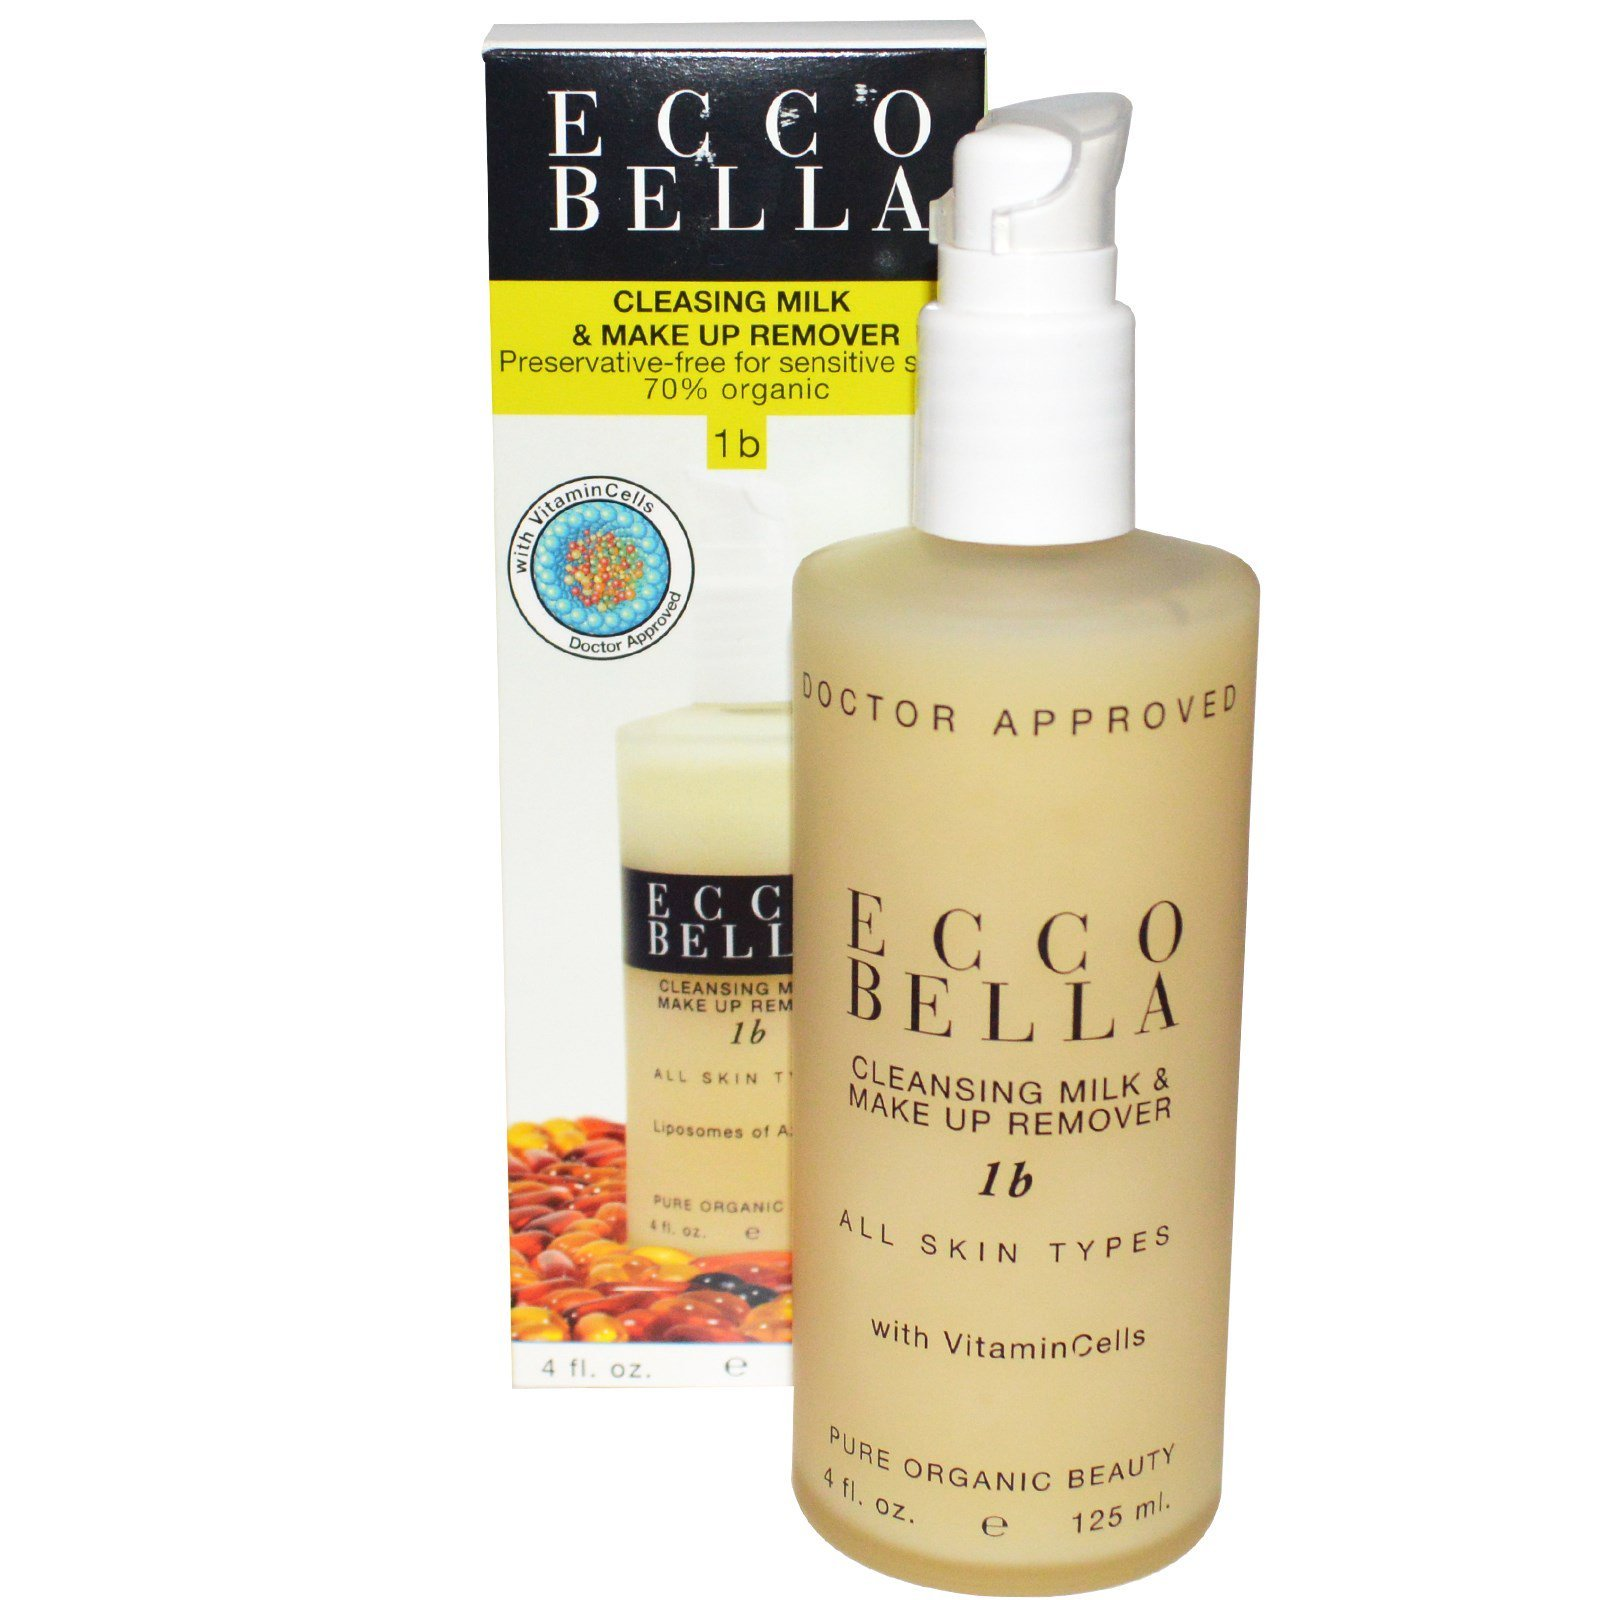 Ecco Bella Cleansing Milk And Make Up Remover With Azulene - 4 Oz Jurlique Purely Age-Defying Eye Cream .5 Oz